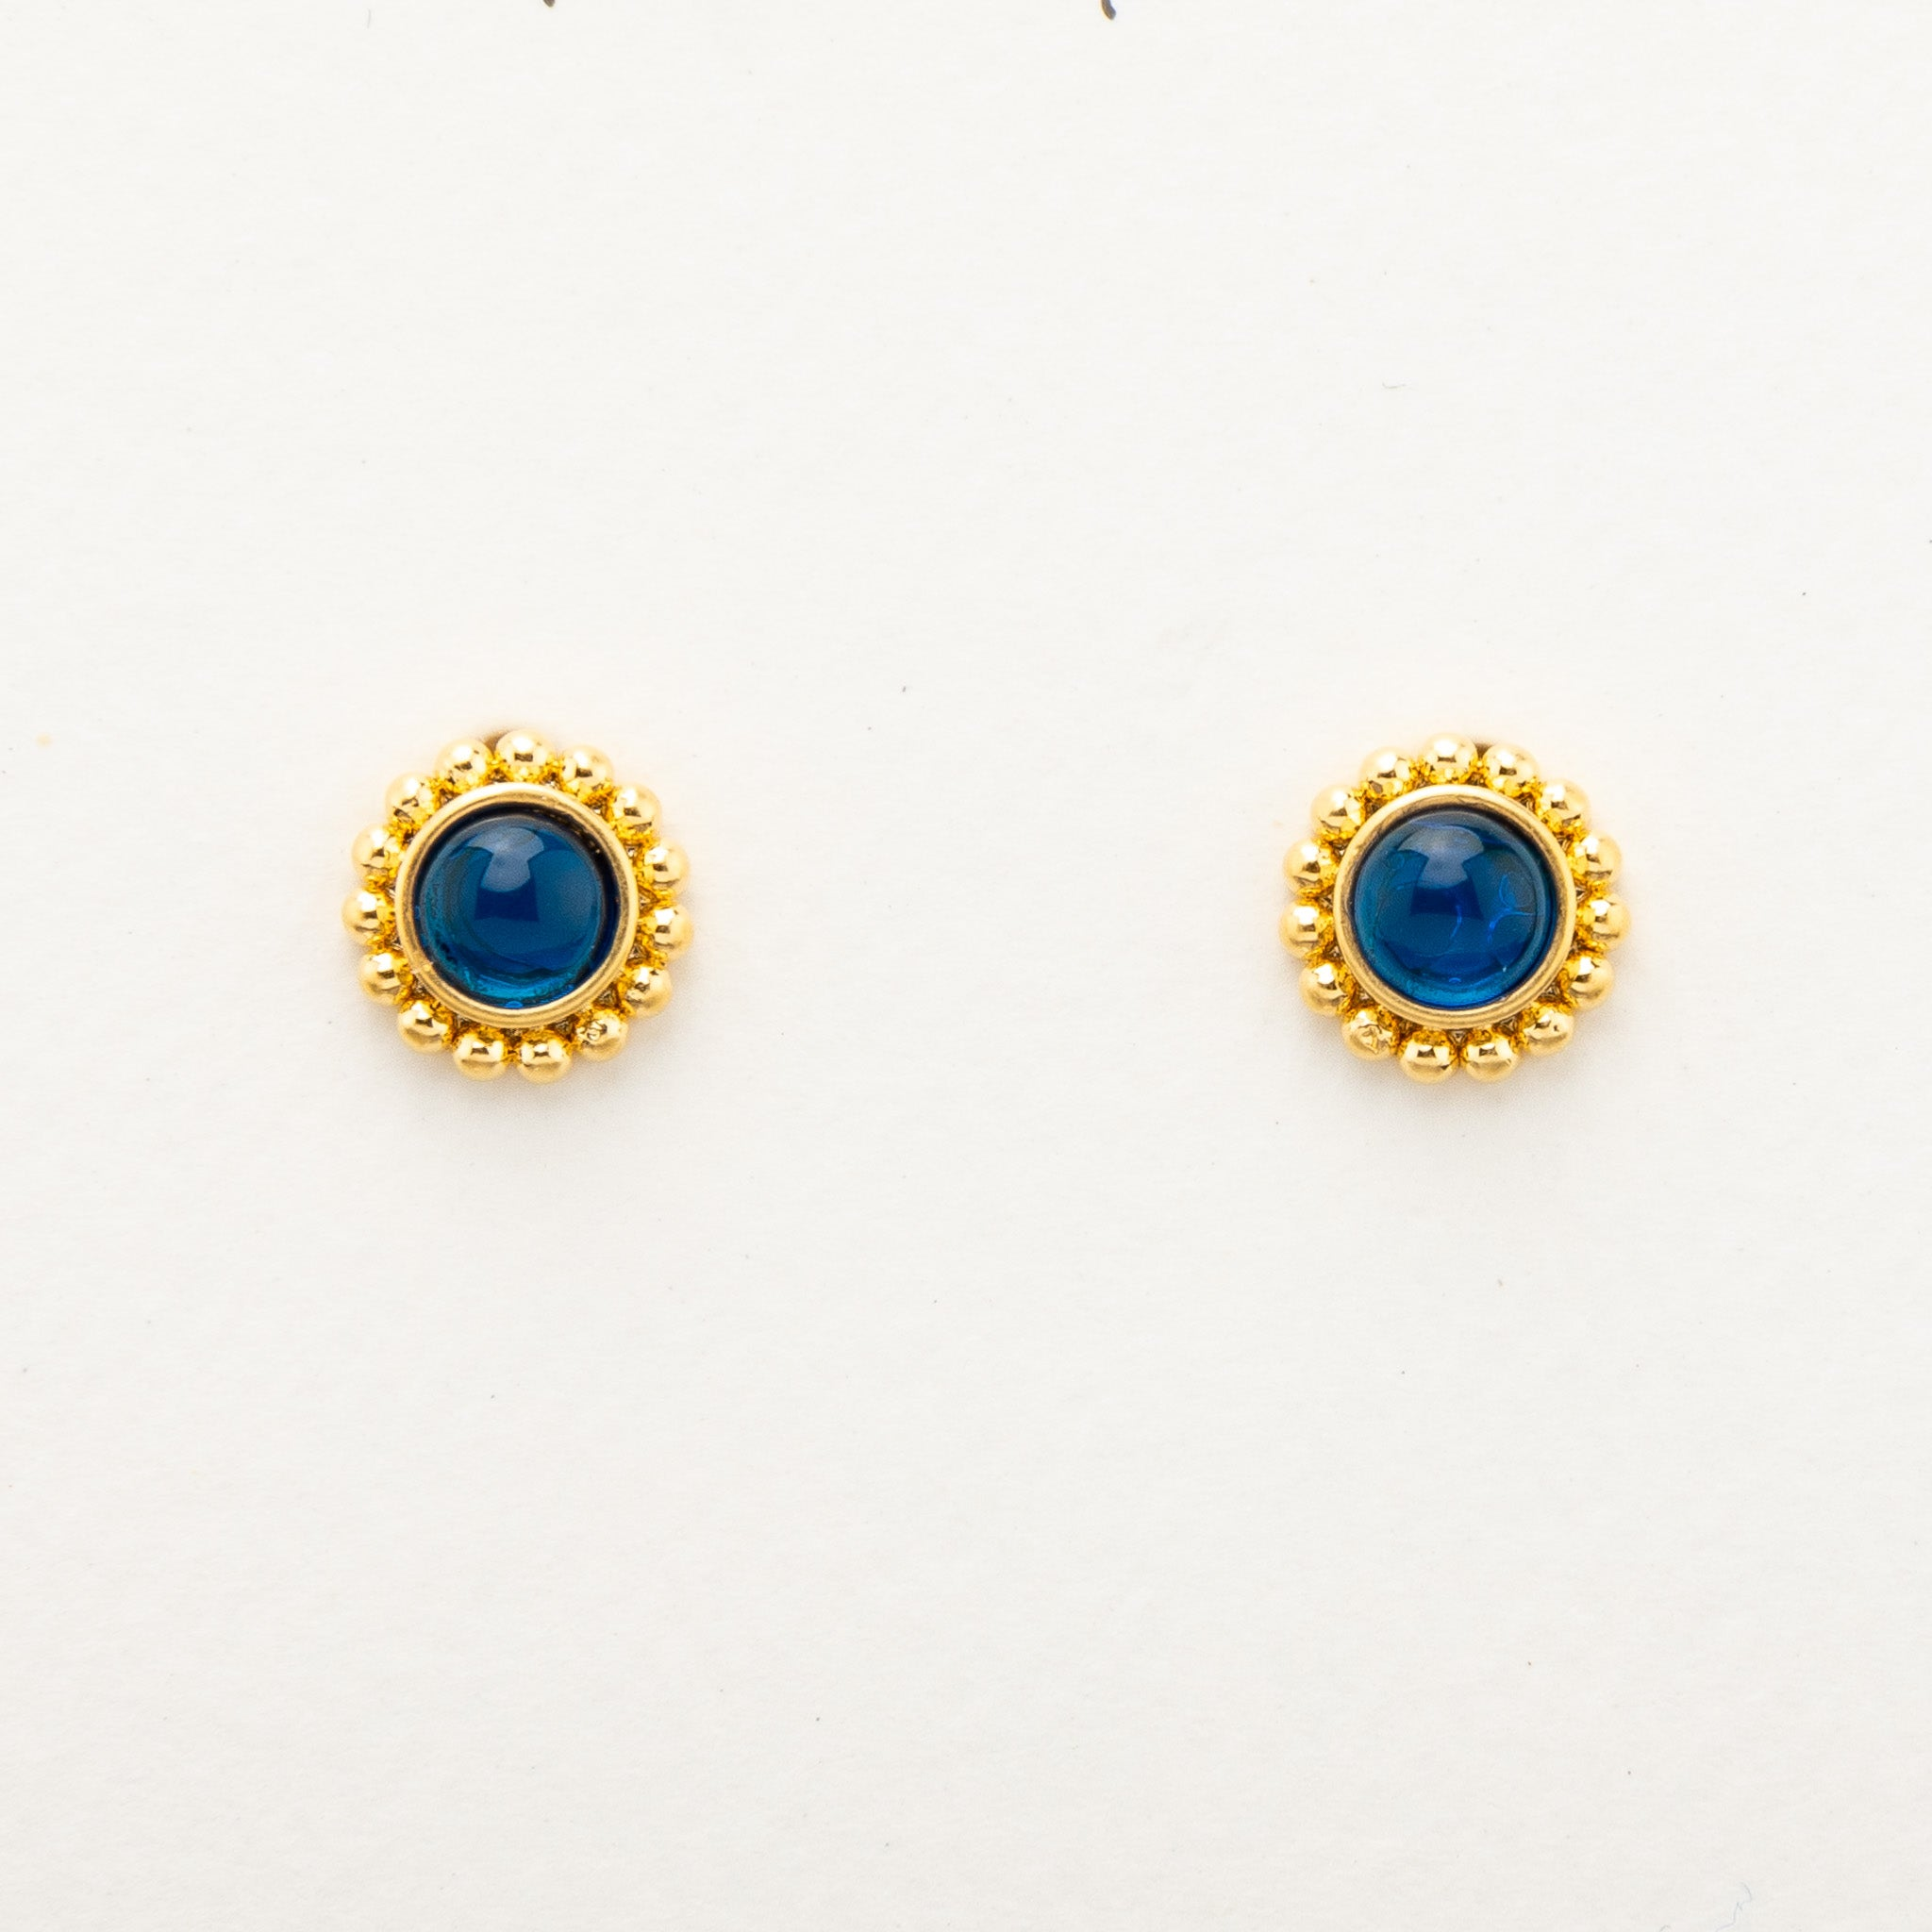 Blue Stud Earrings - gold